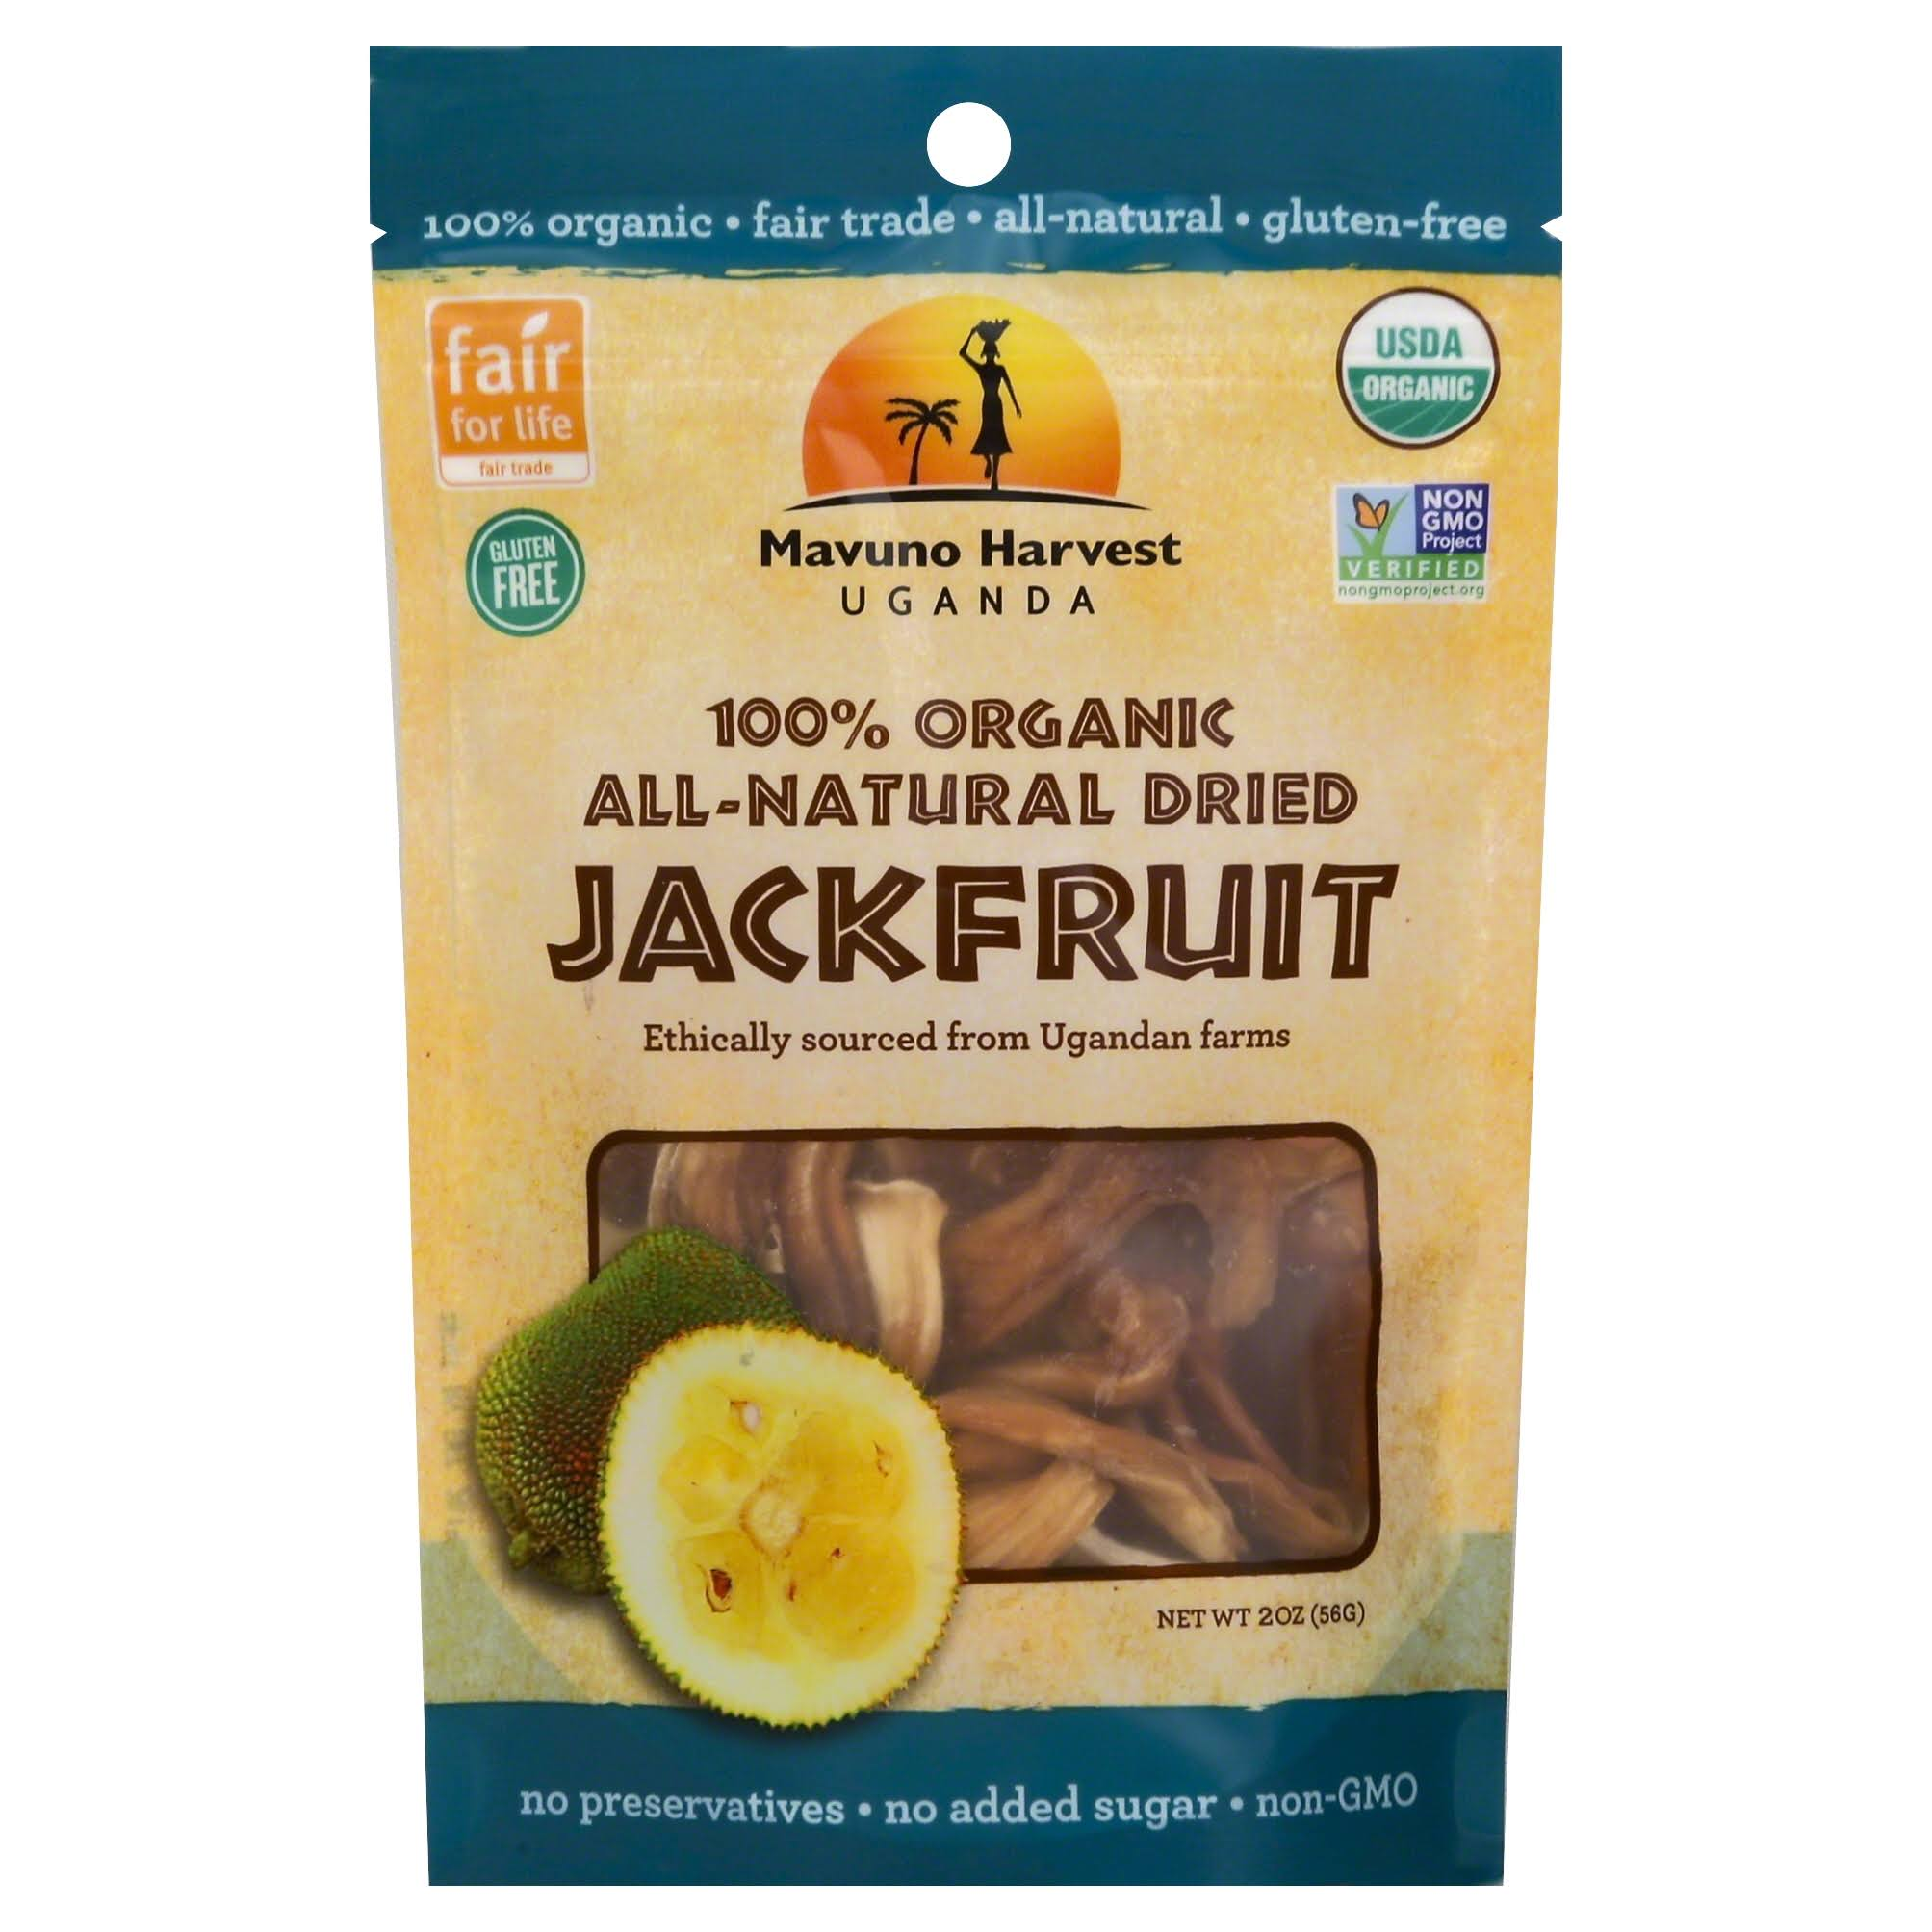 Mavuno Harvest Organic Dried Jackfruit - 2 Oz